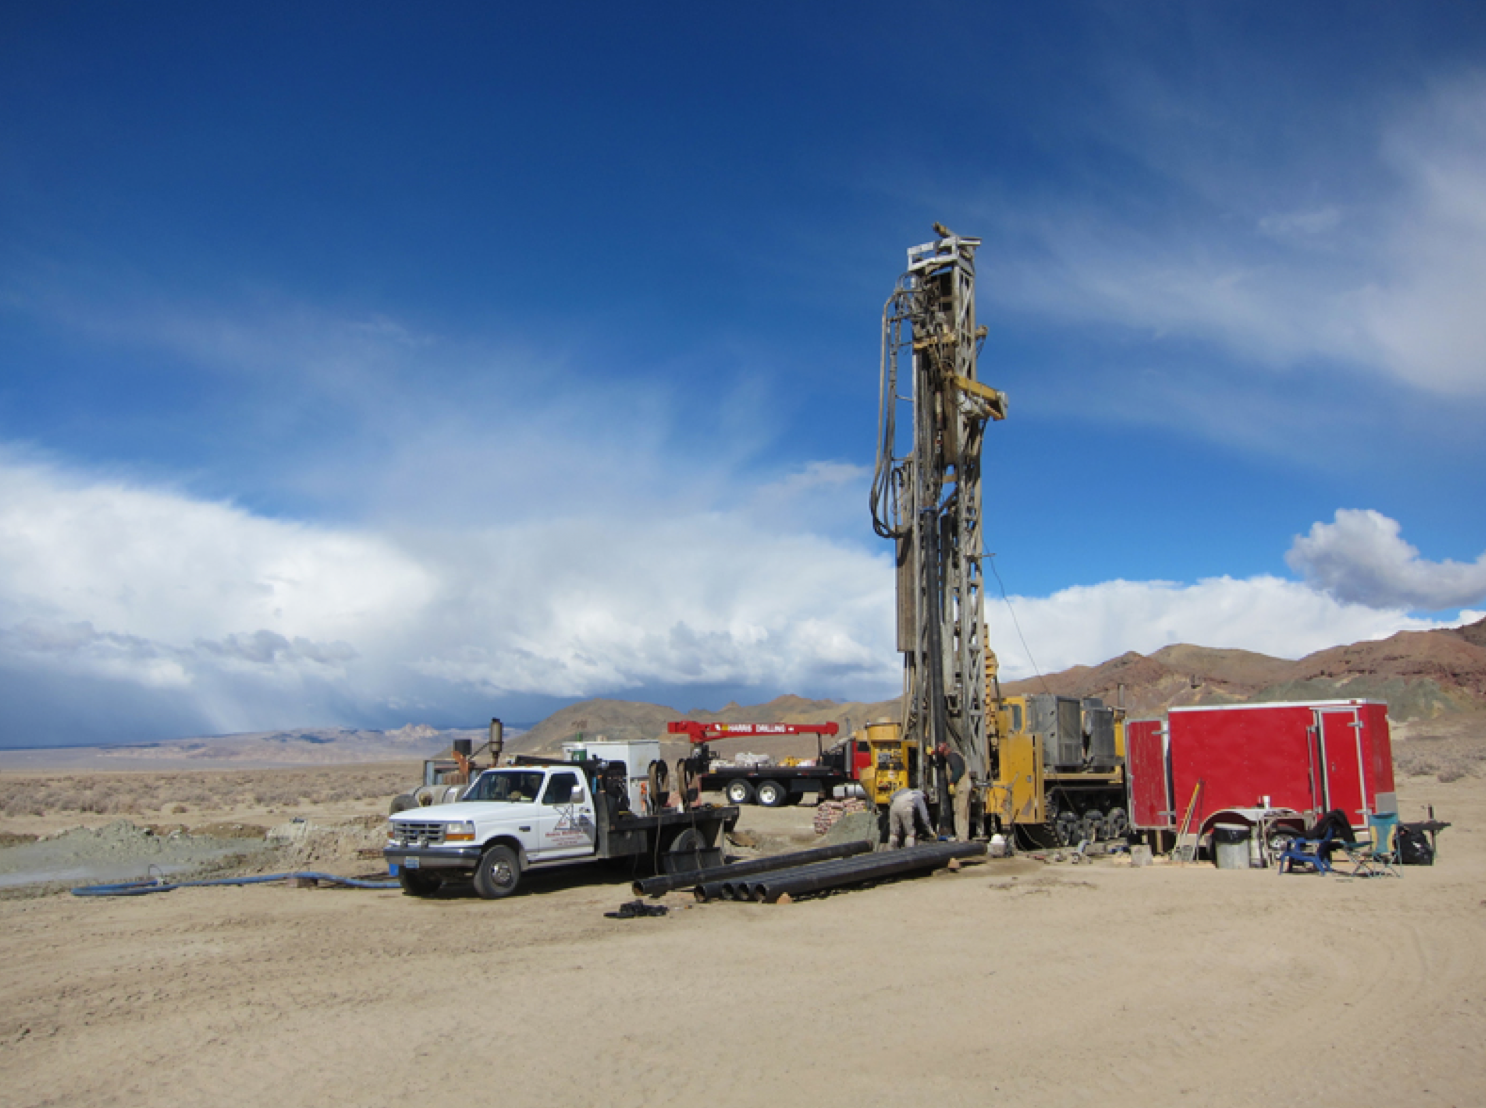 The Clayton Valley is a lithium-rich area in Nevada that is being developed by Pure Energy Minerals